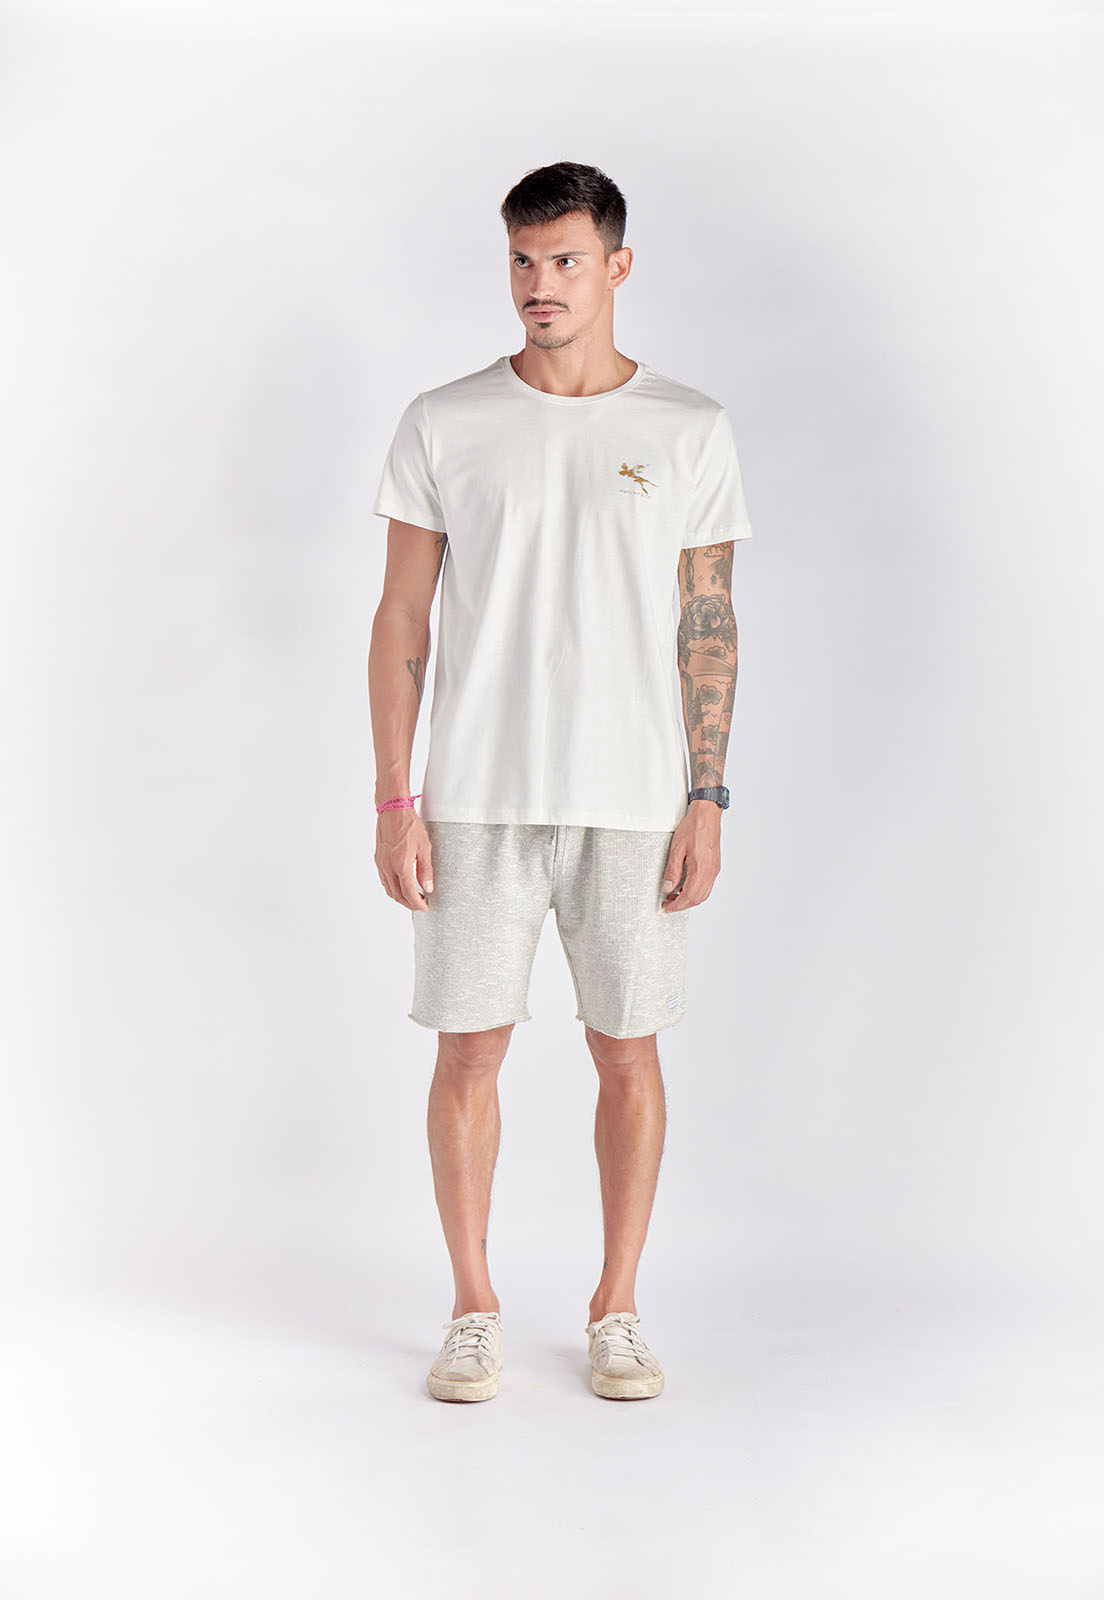 T-shirt Classic Traveler Branco Melty  - melty surf & Co.